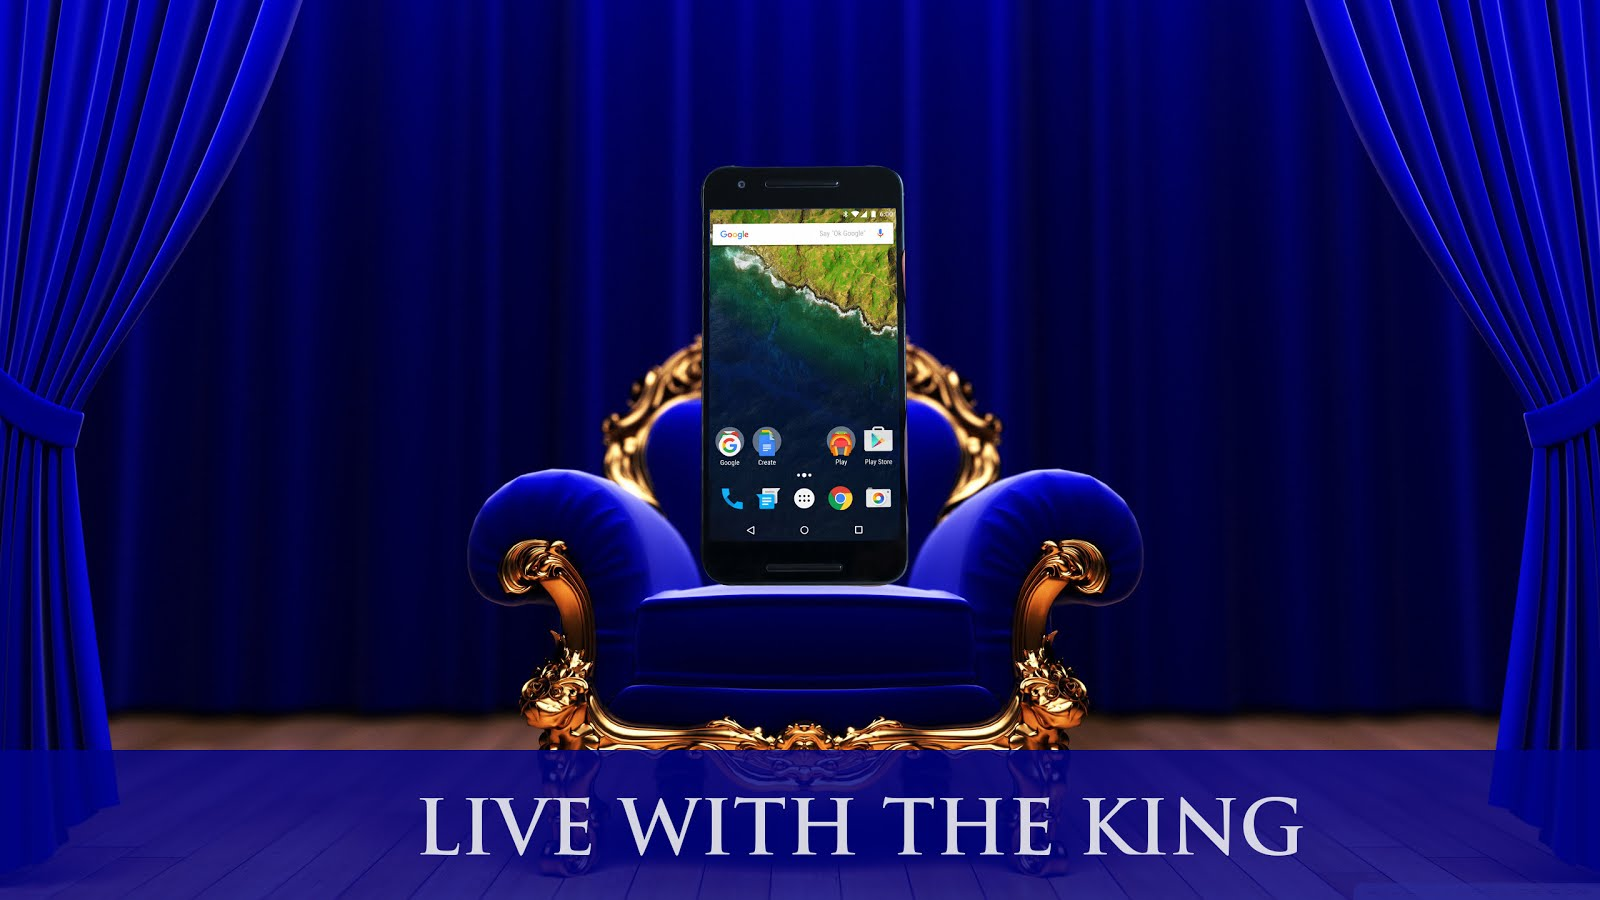 Live with the King